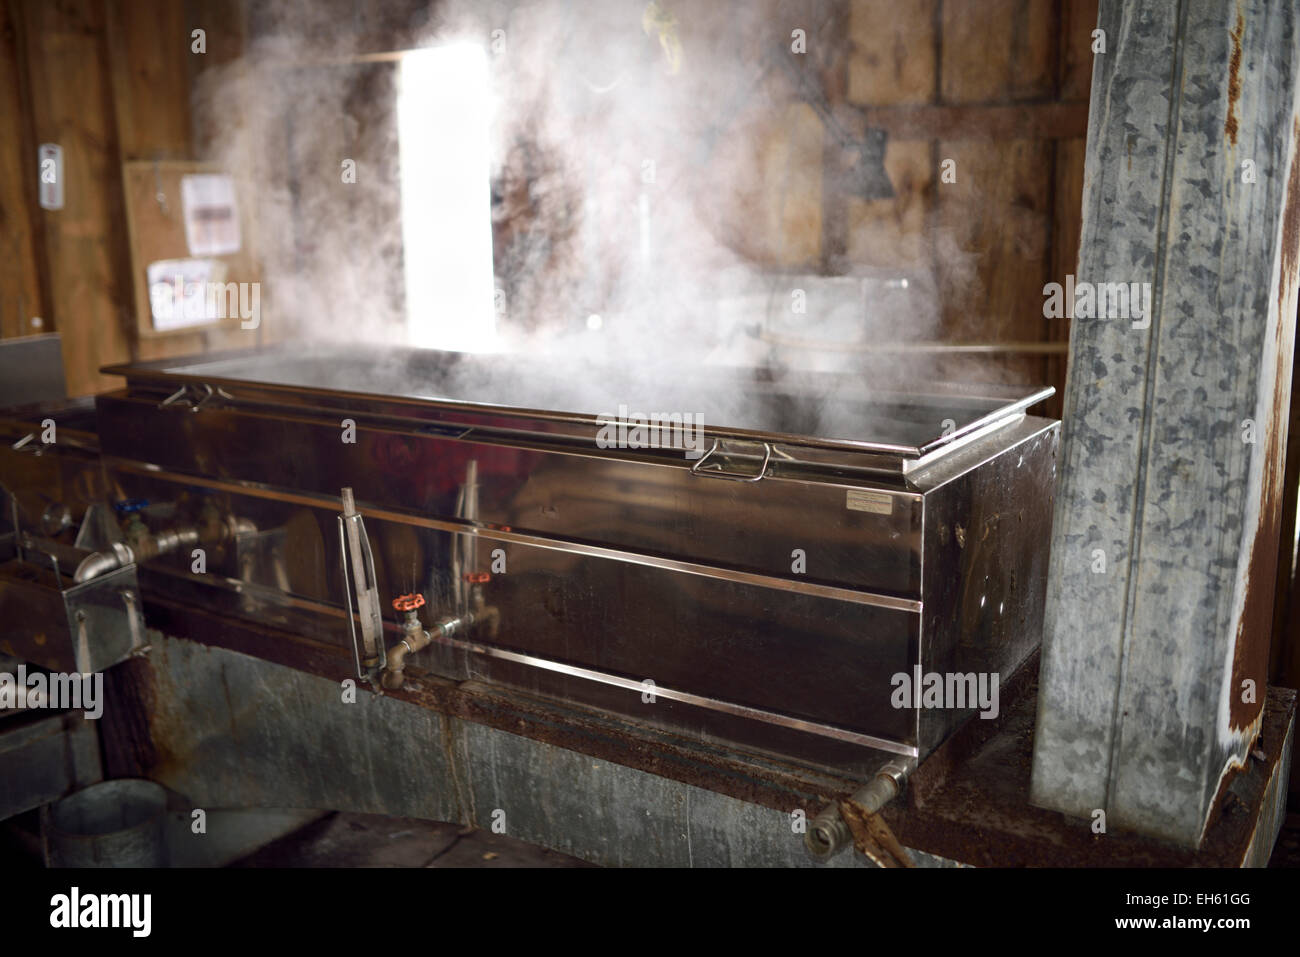 Wood burning steel evaporator with steaming sap for Maple syrup production inside a sugar shack Ontario Canada - Stock Image